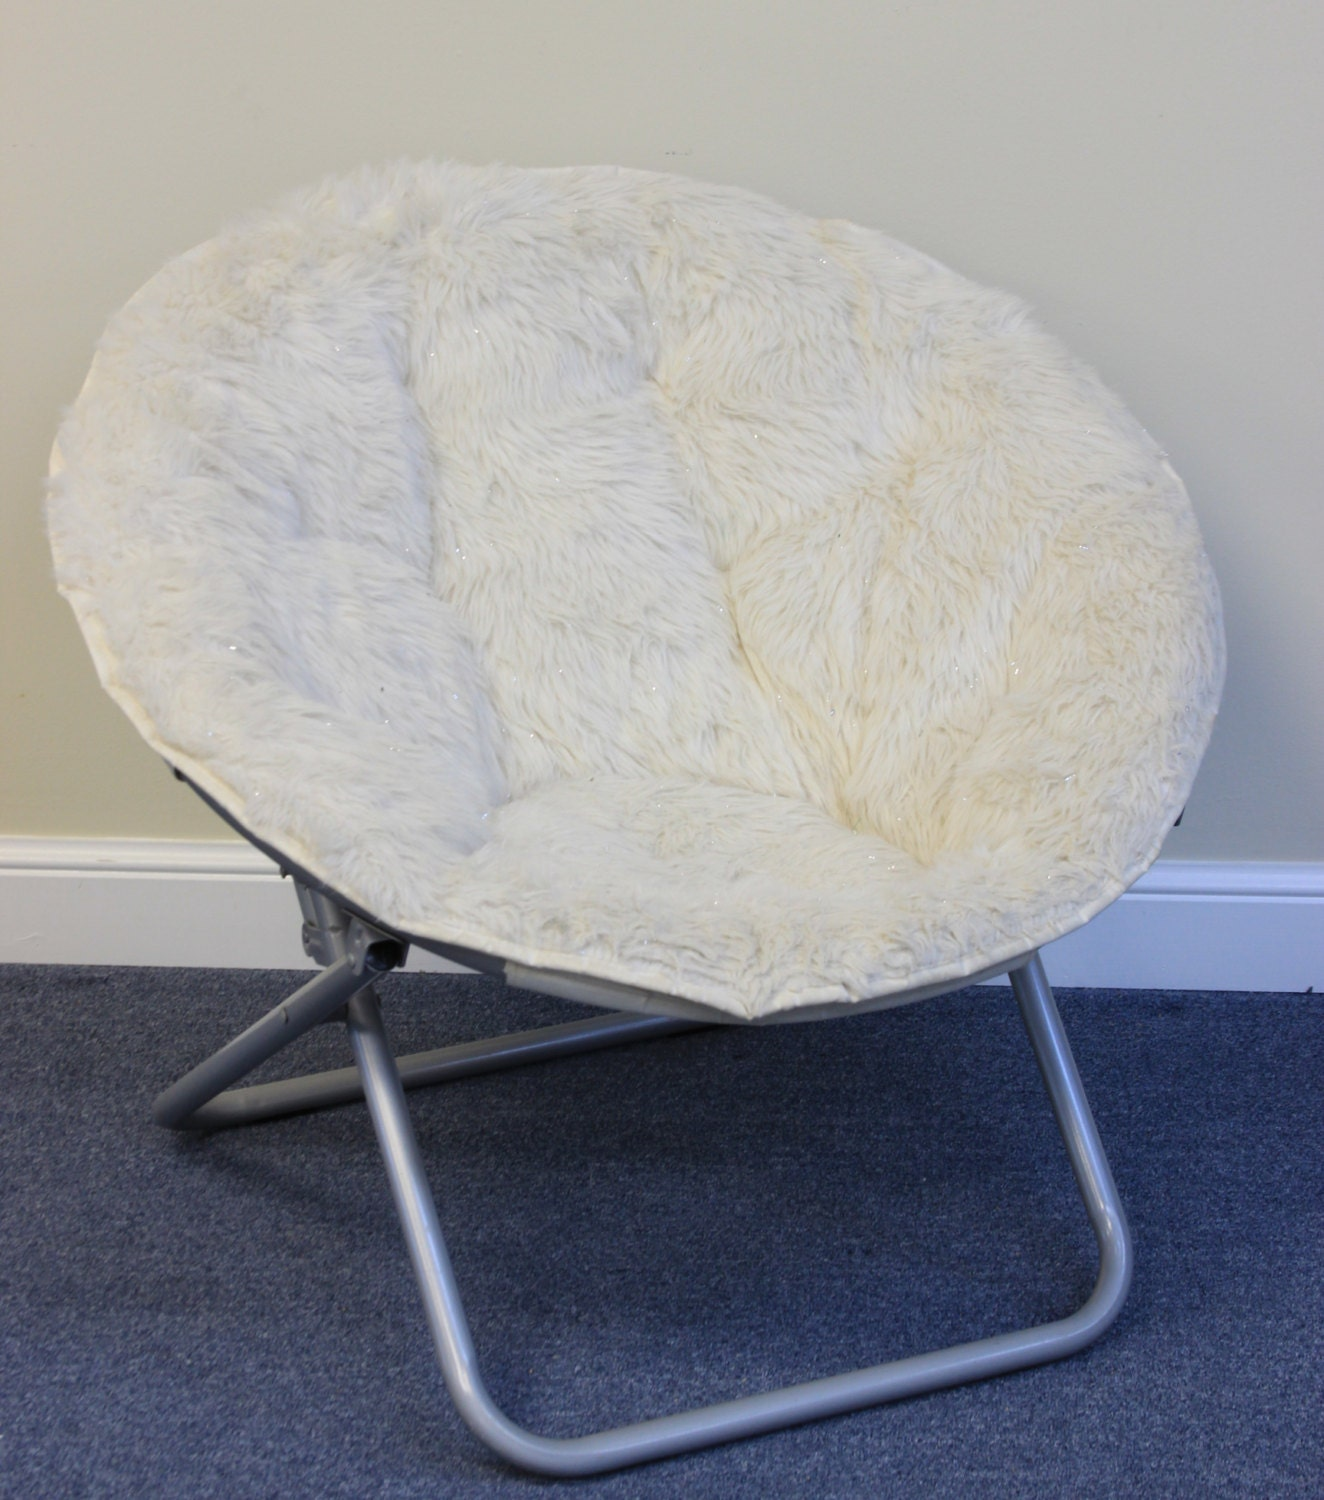 Faux Fur Fold Out Bowl Chairs